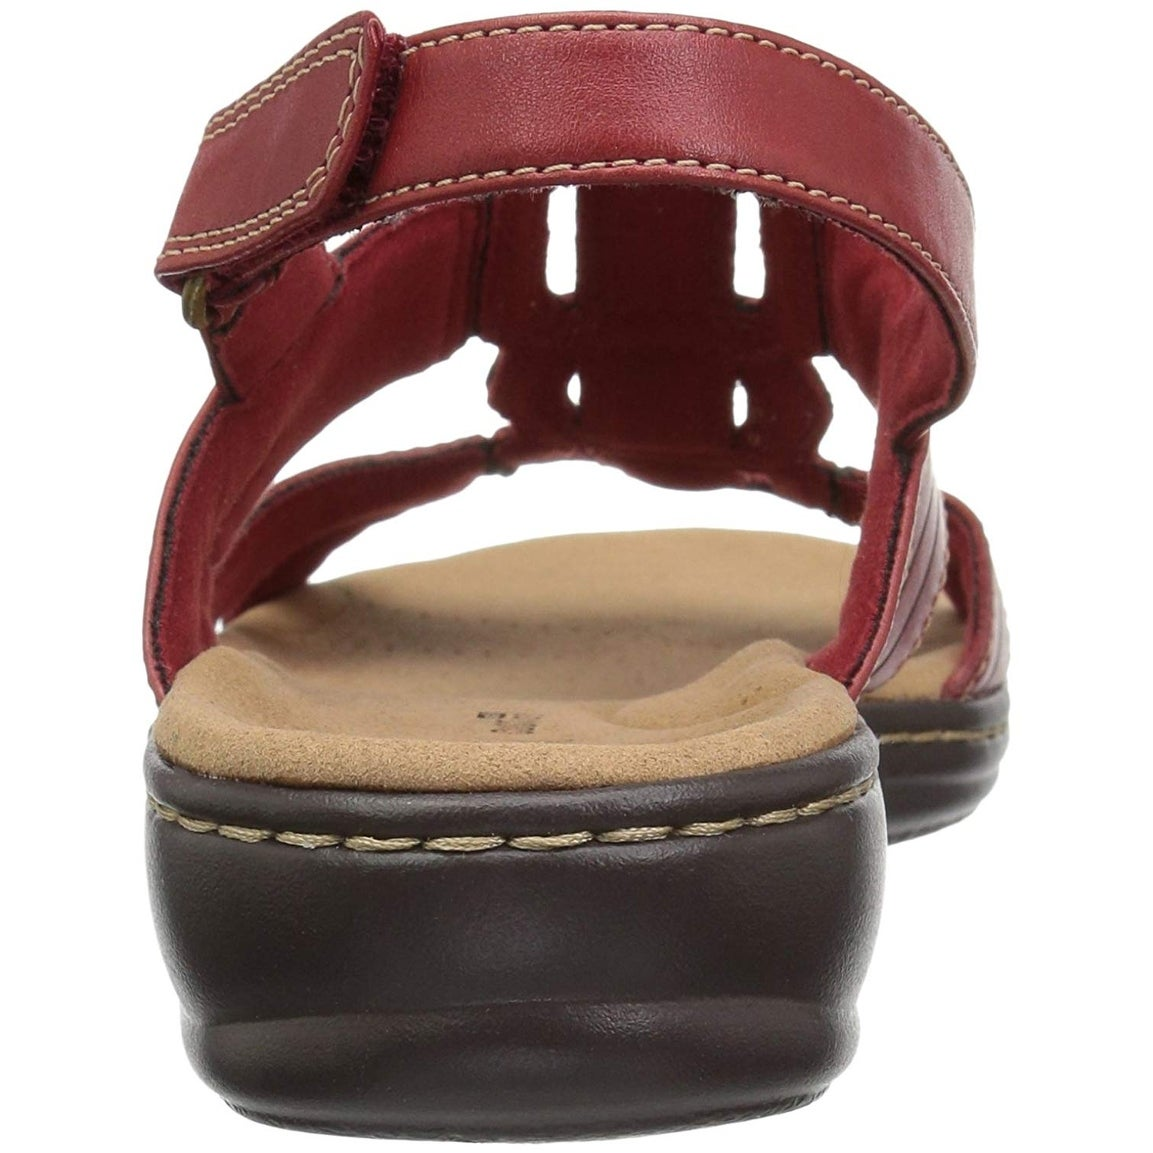 9f13bf51d39c Shop CLARKS Womens leisa vine Leather Open Toe Casual Ankle Strap Sandals -  Free Shipping Today - Overstock - 22362286